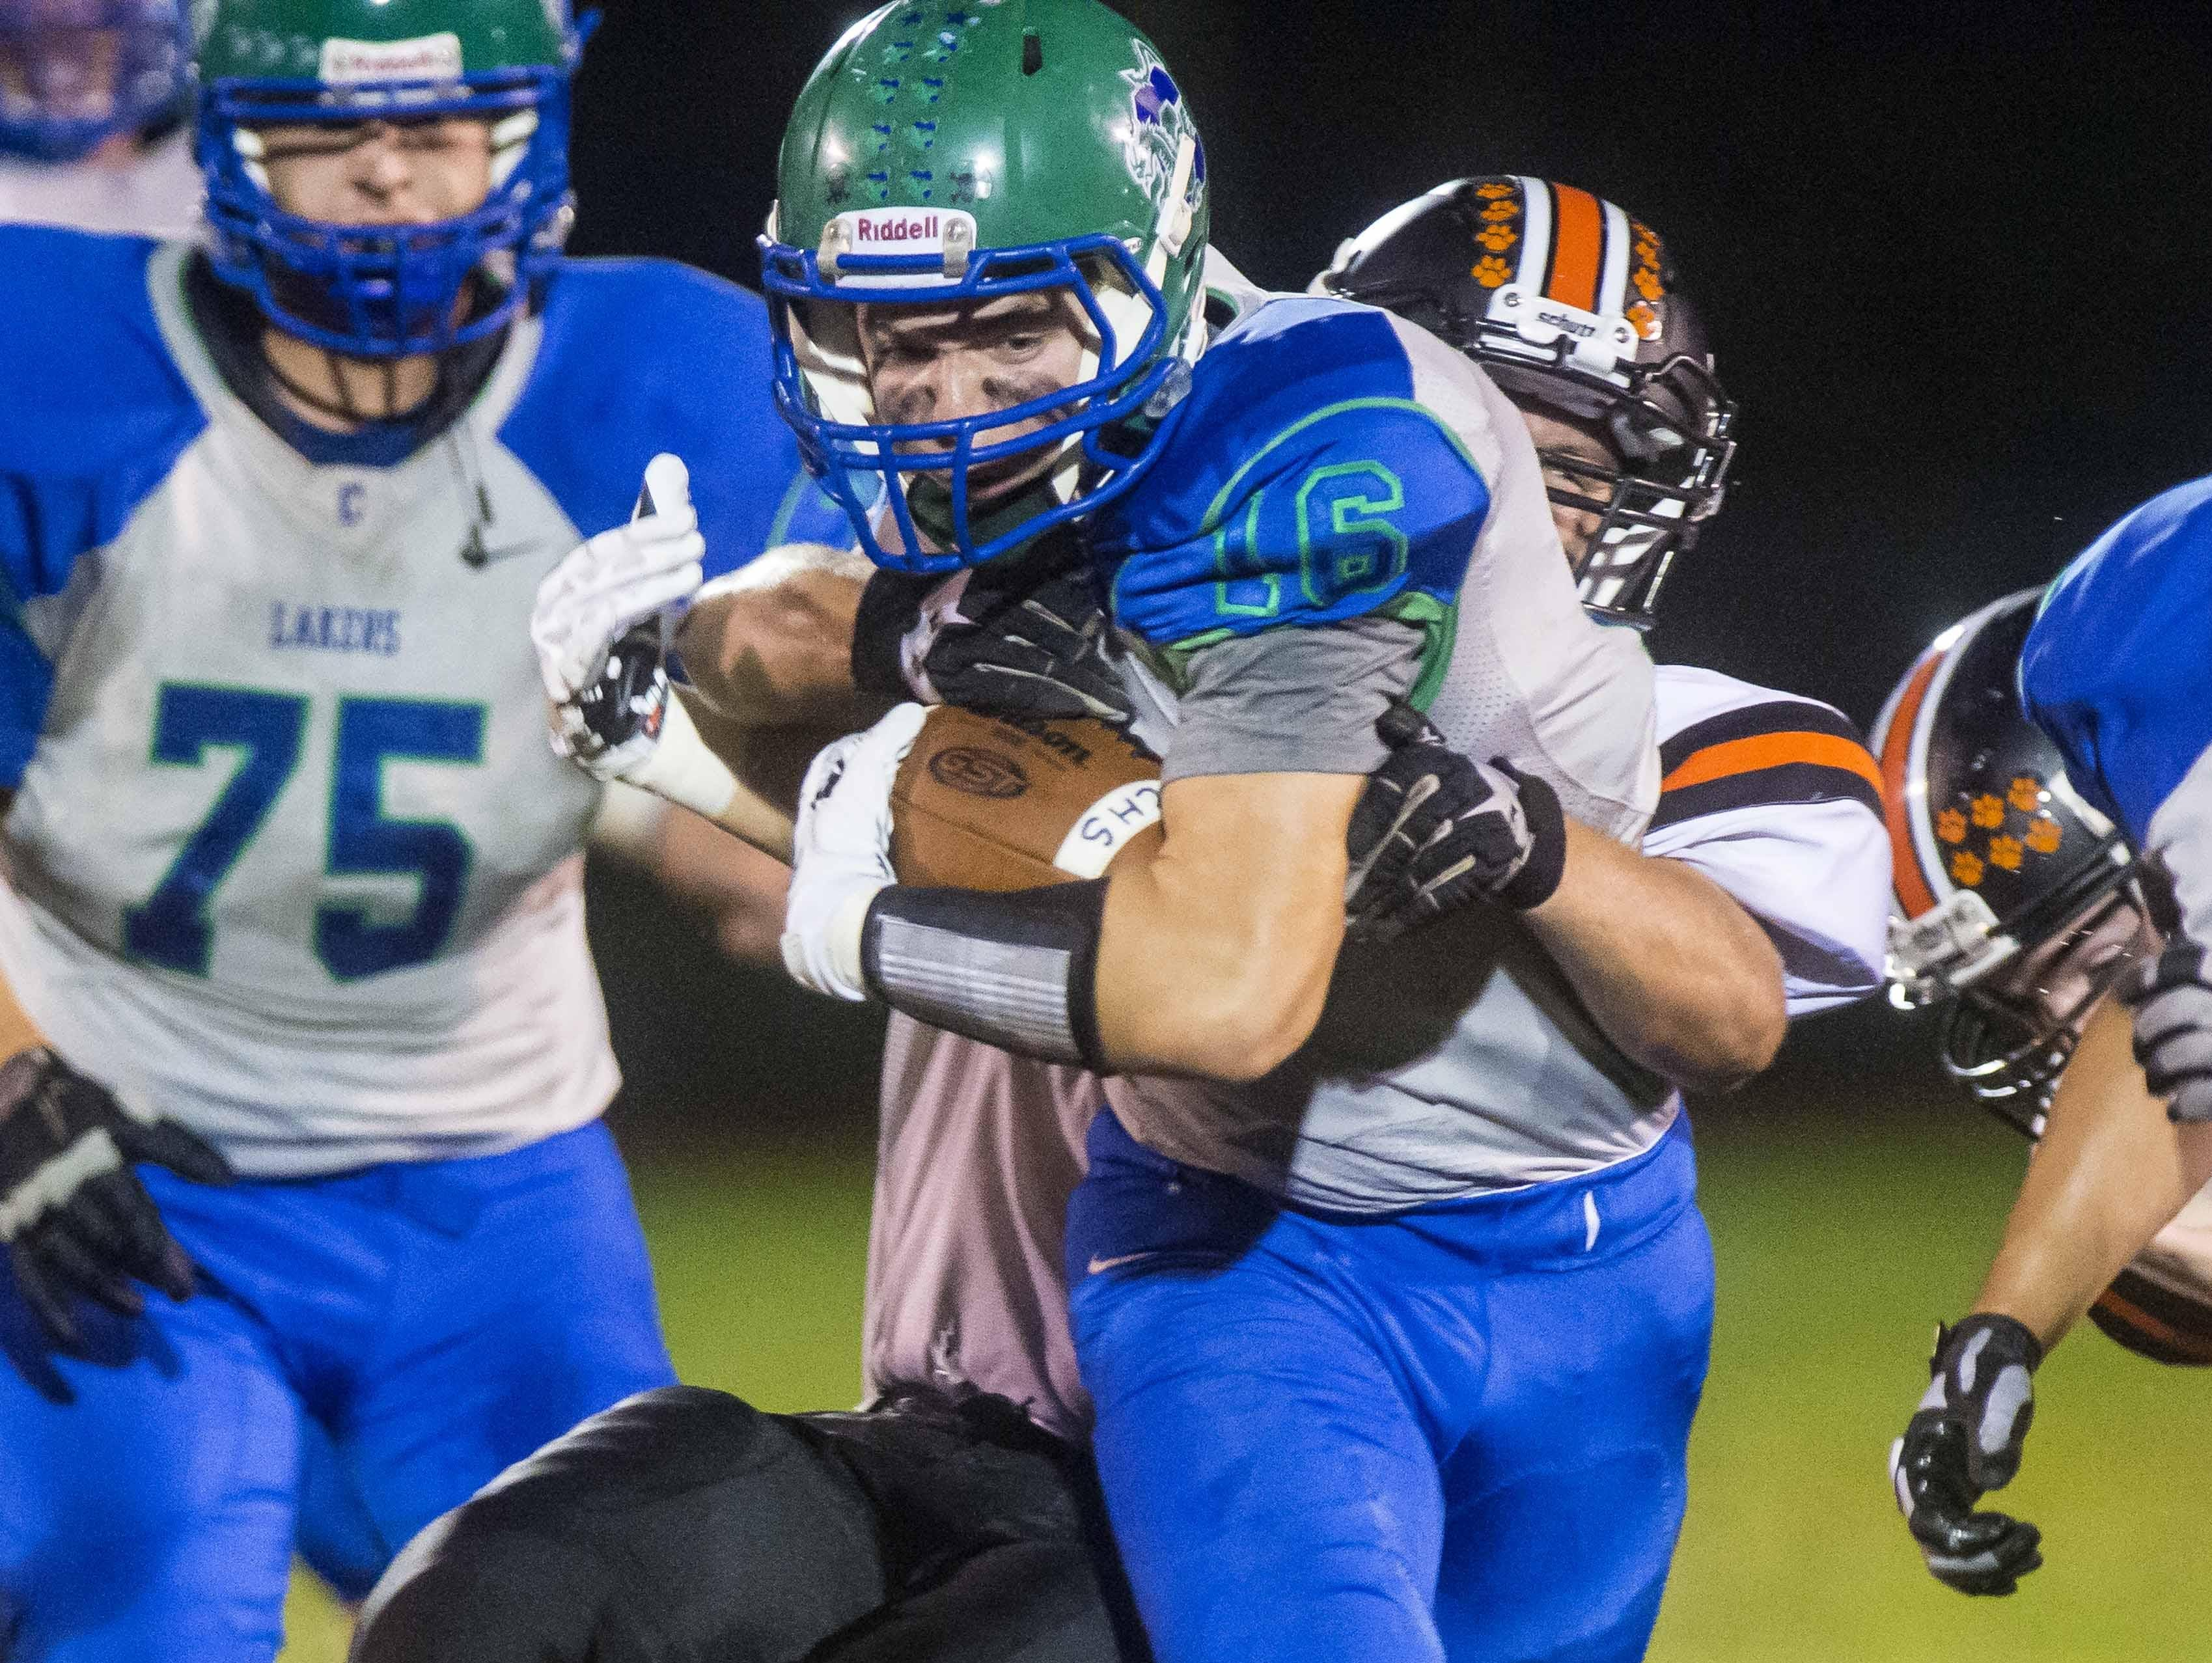 Colchester's Dakota Navari, front, is pulled down by Middlebury's Chris Grier in Colchester on Friday, September 18, 2015.